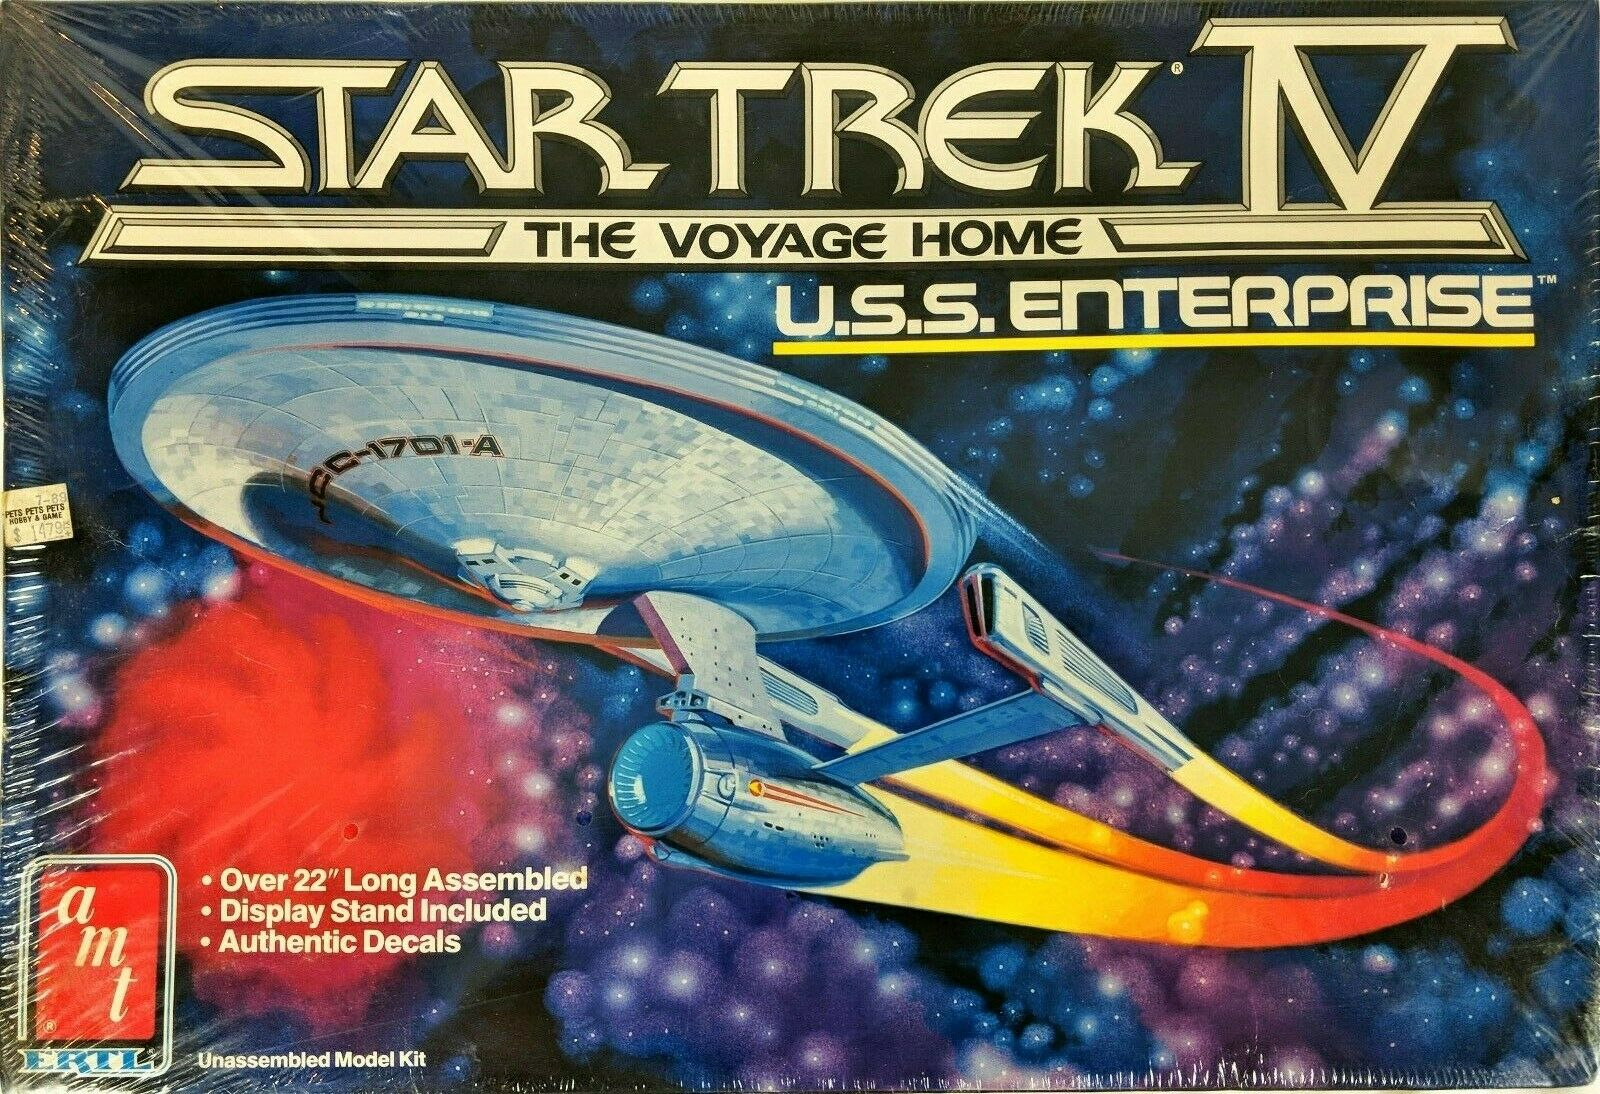 Model Enterprise USS Home 4 Trek Star Vintage Kit Voyage NOS